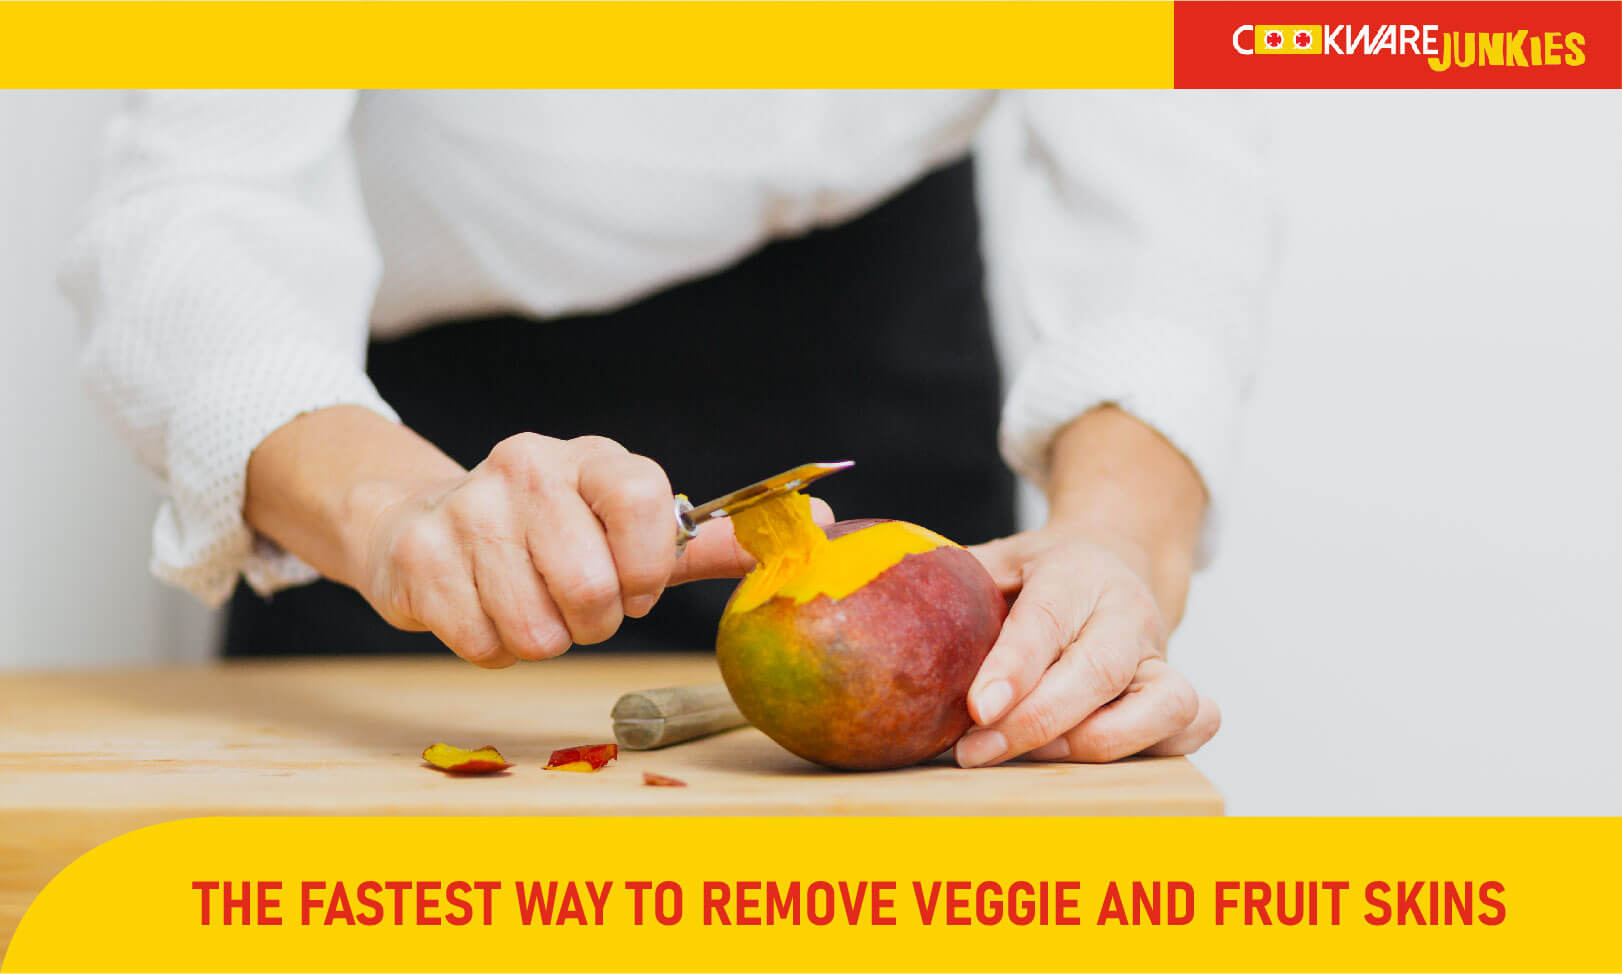 The fastest way to remove veggie and fruit skins Featured image